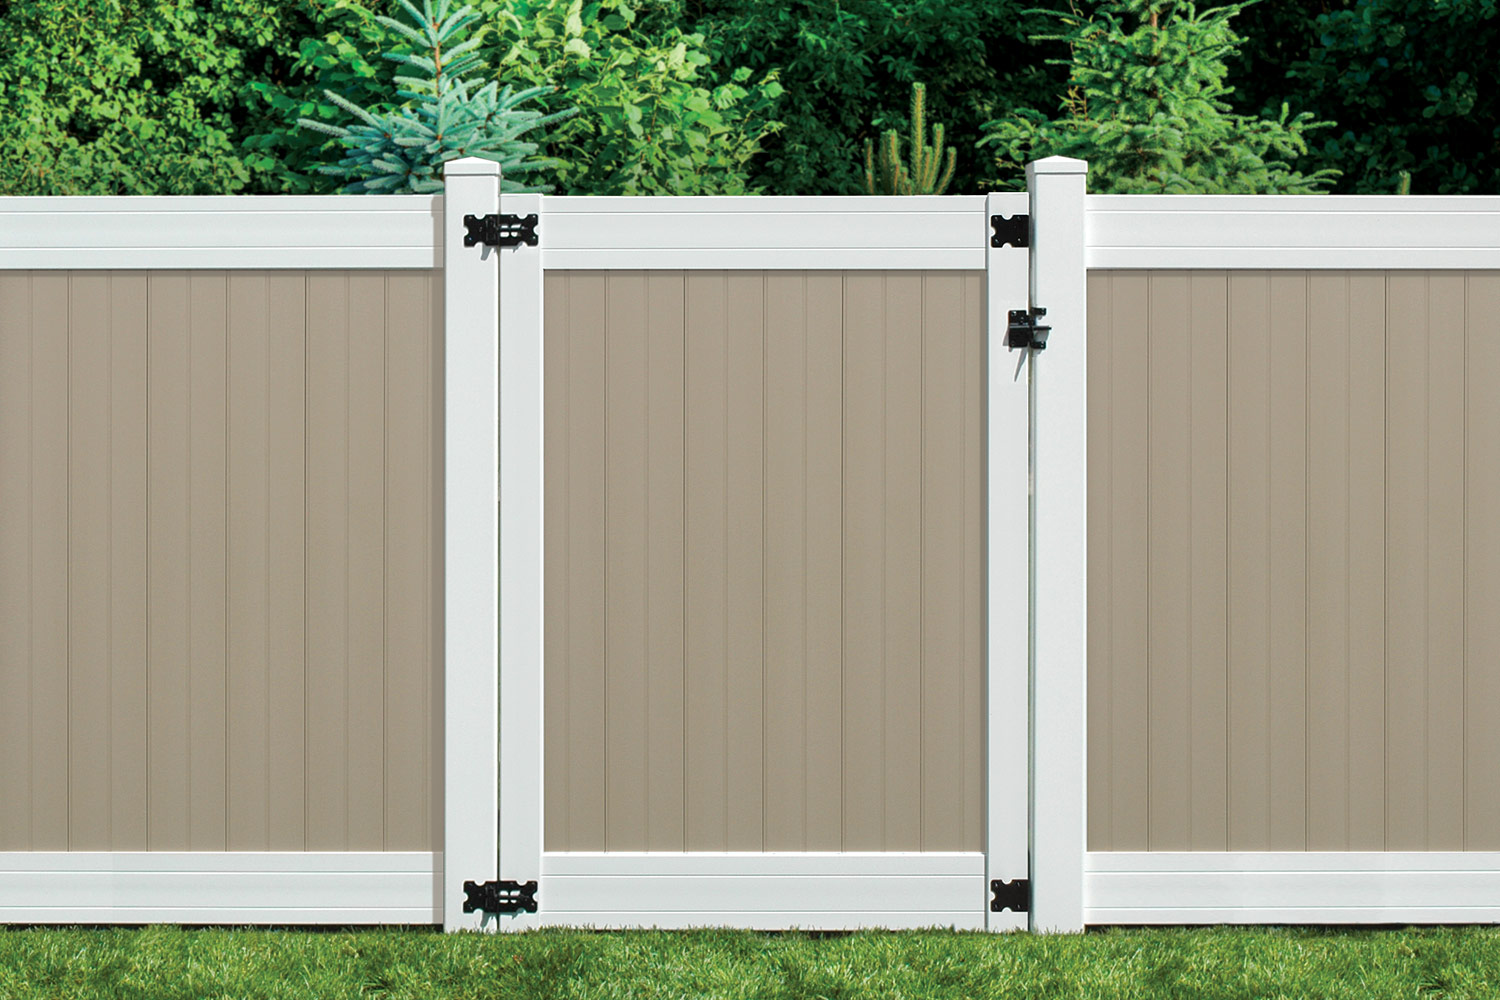 Sixth Avenue Building Products Wexford Privacy Fence and Gate - Tan-White